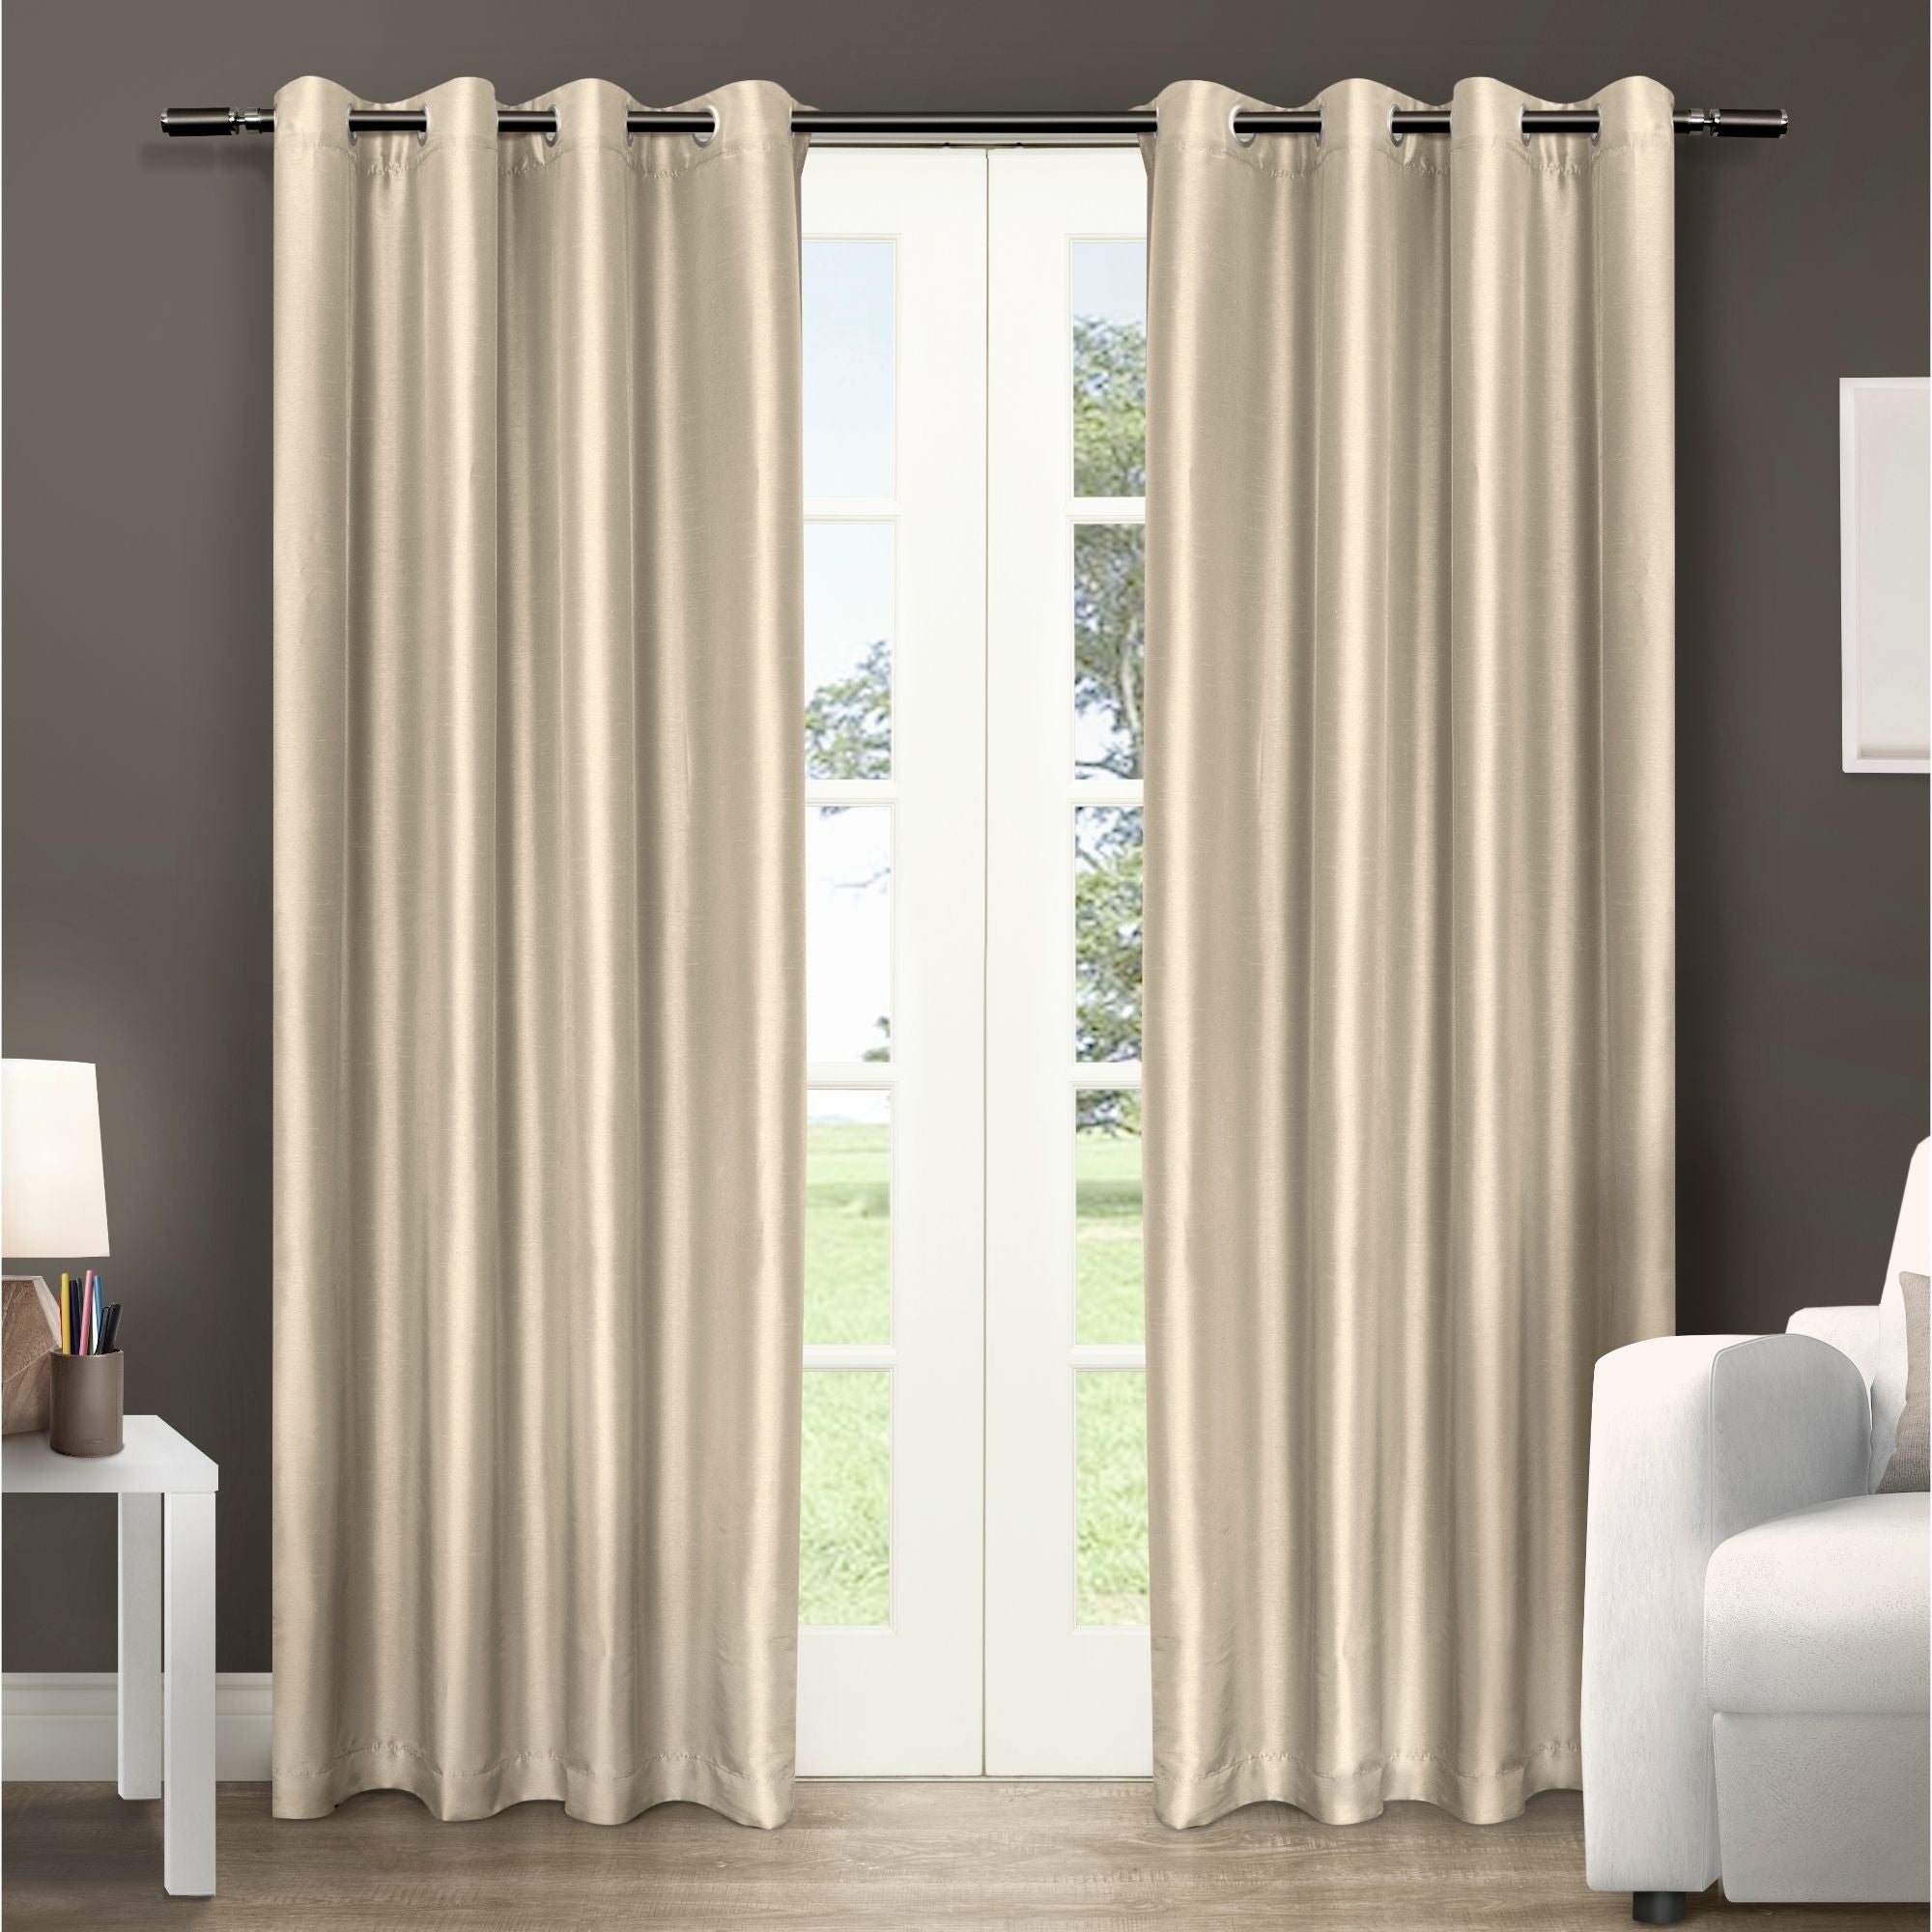 Copper Grove Fulgence Faux Silk Grommet Top Panel Curtains – N/ A Inside Copper Grove Fulgence Faux Silk Grommet Top Panel Curtains (View 4 of 20)